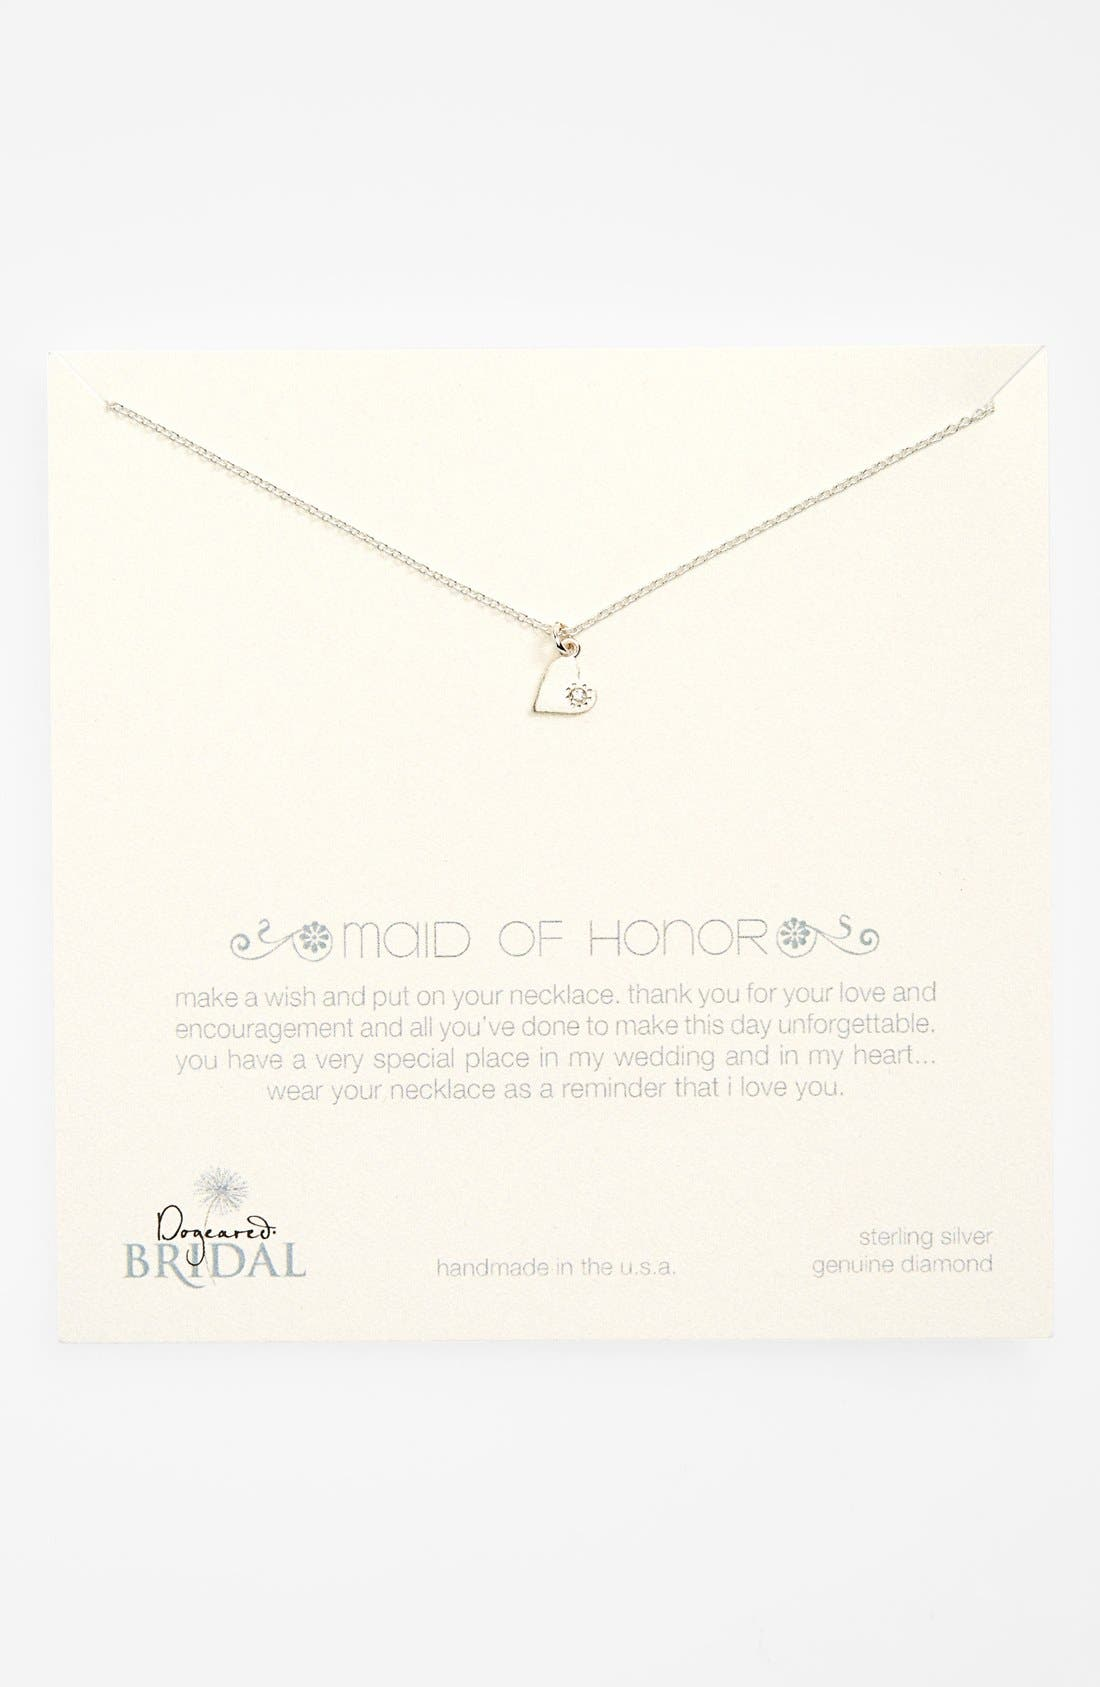 Alternate Image 1 Selected - Dogeared 'Maid of Honor - Heart' Pendant Necklace (Nordstrom Exclusive)